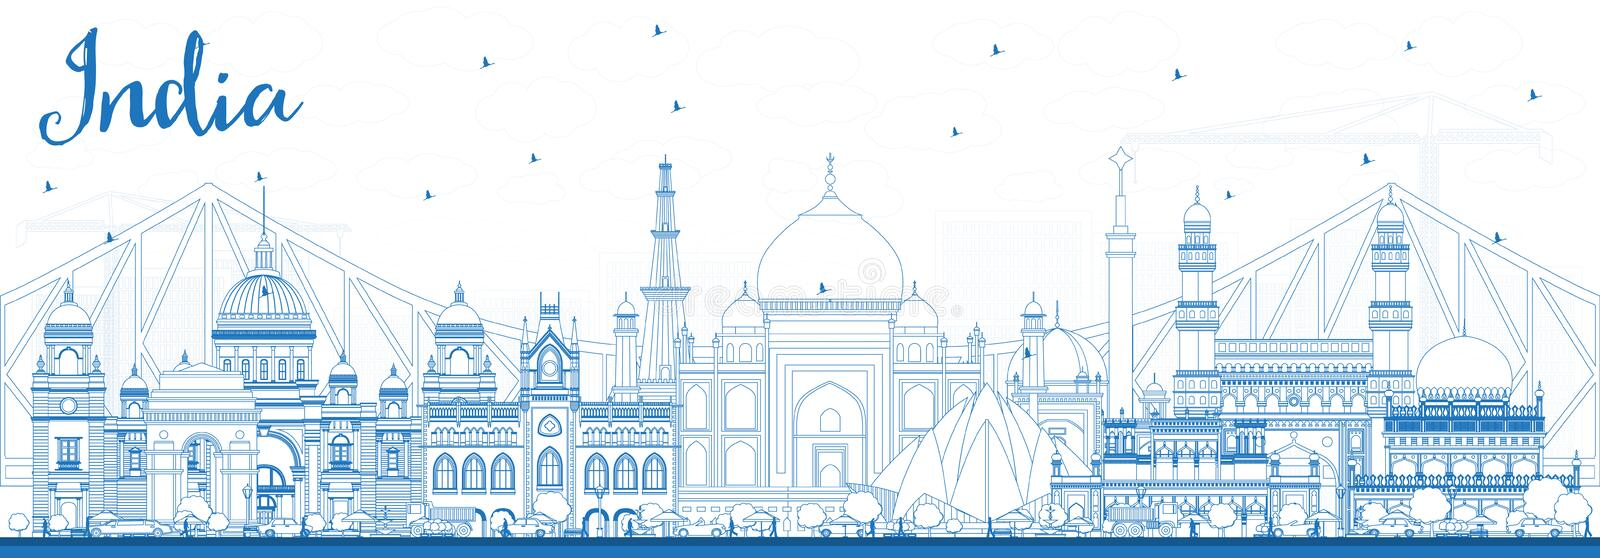 Outline India City Skyline with Blue Buildings. Delhi. Hyderabad. Kolkata. Vector Illustration. Travel and Tourism Concept with Historic Architecture. India stock illustration